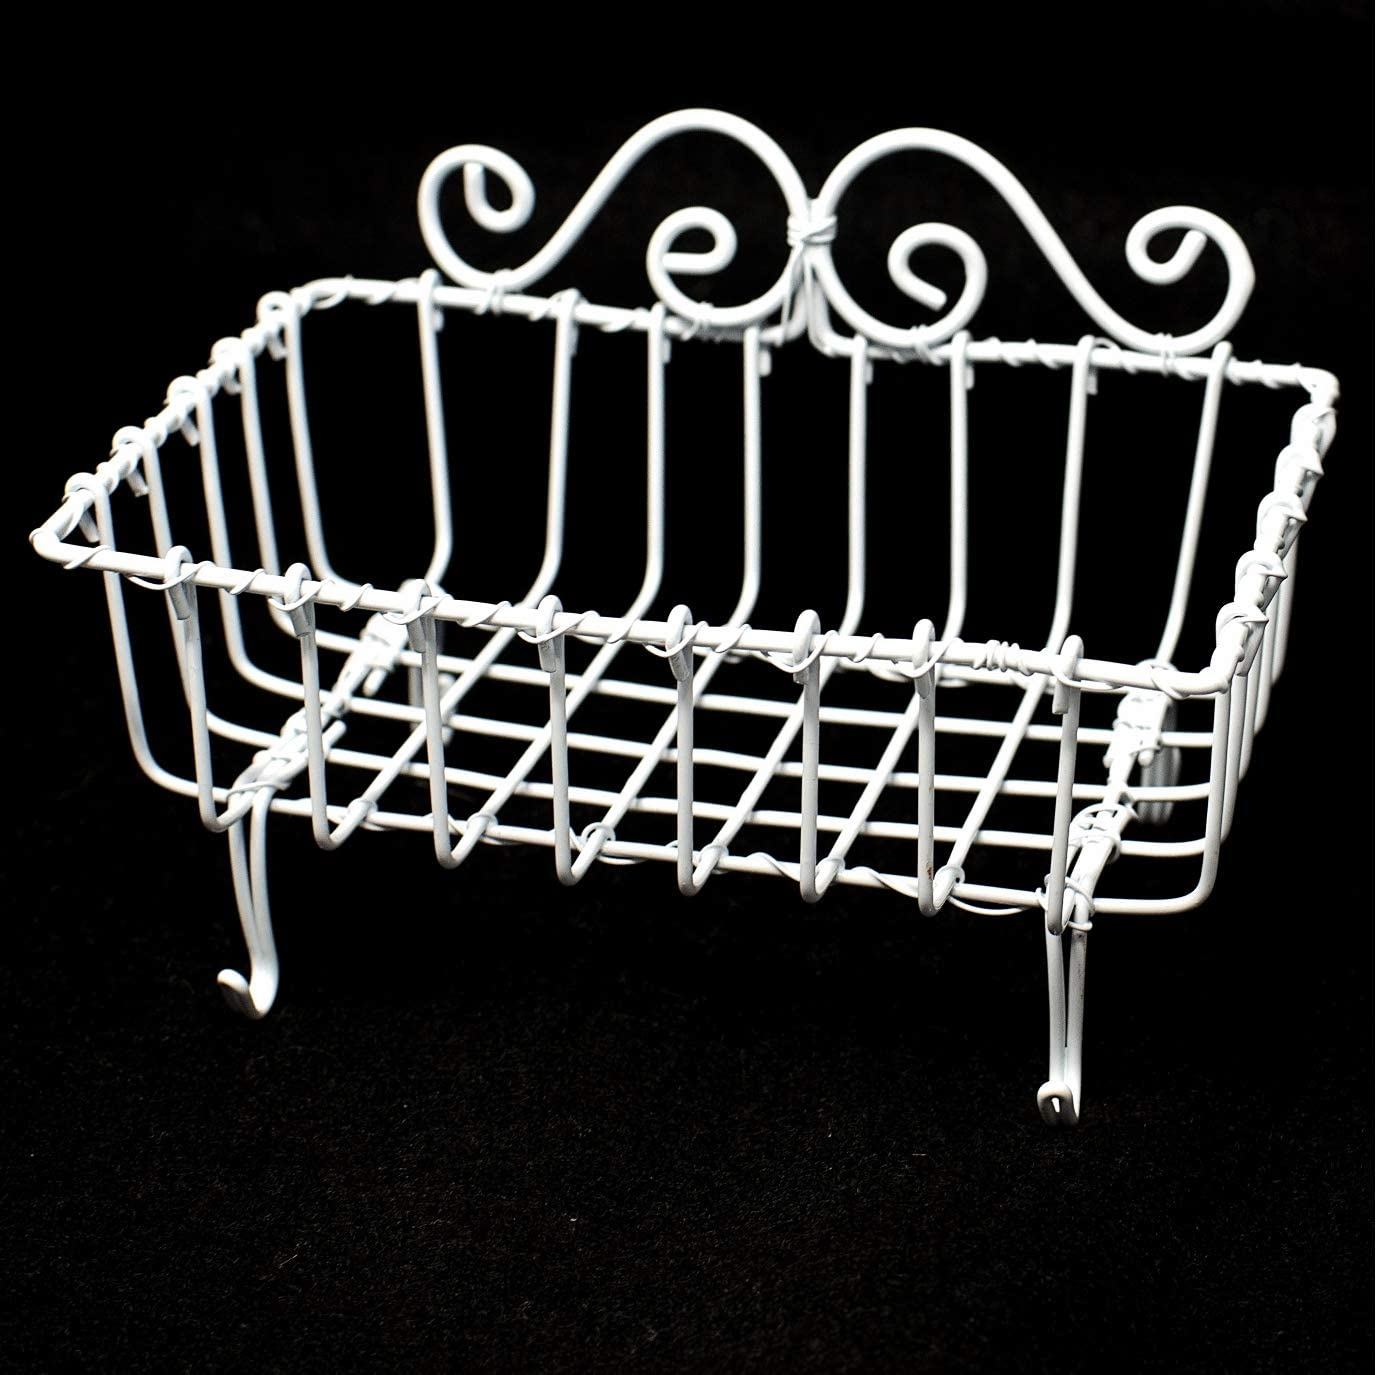 WHITE VINTAGE WIRE SPONGE BASKET - Soap holder in antique French provincial farmhouse style rustic functional country decor soap or sponge accessory for your home cabin kitchen bathroom bath shower